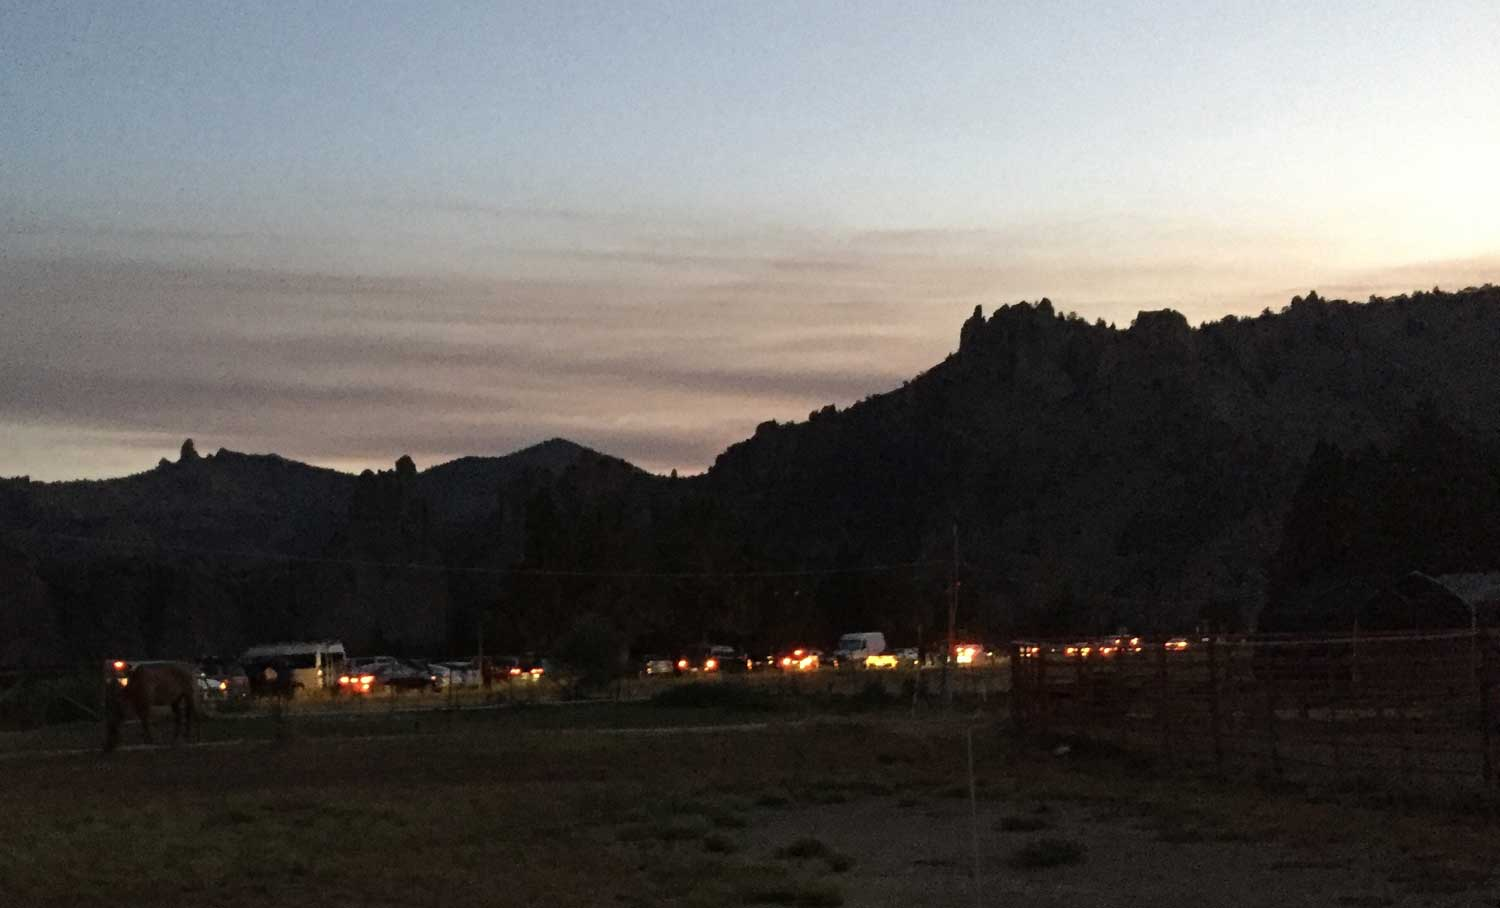 Traffic streaming in at 5:30 AM as the makeshift gate opens for the Total Solar Eclipse at Smith Rock